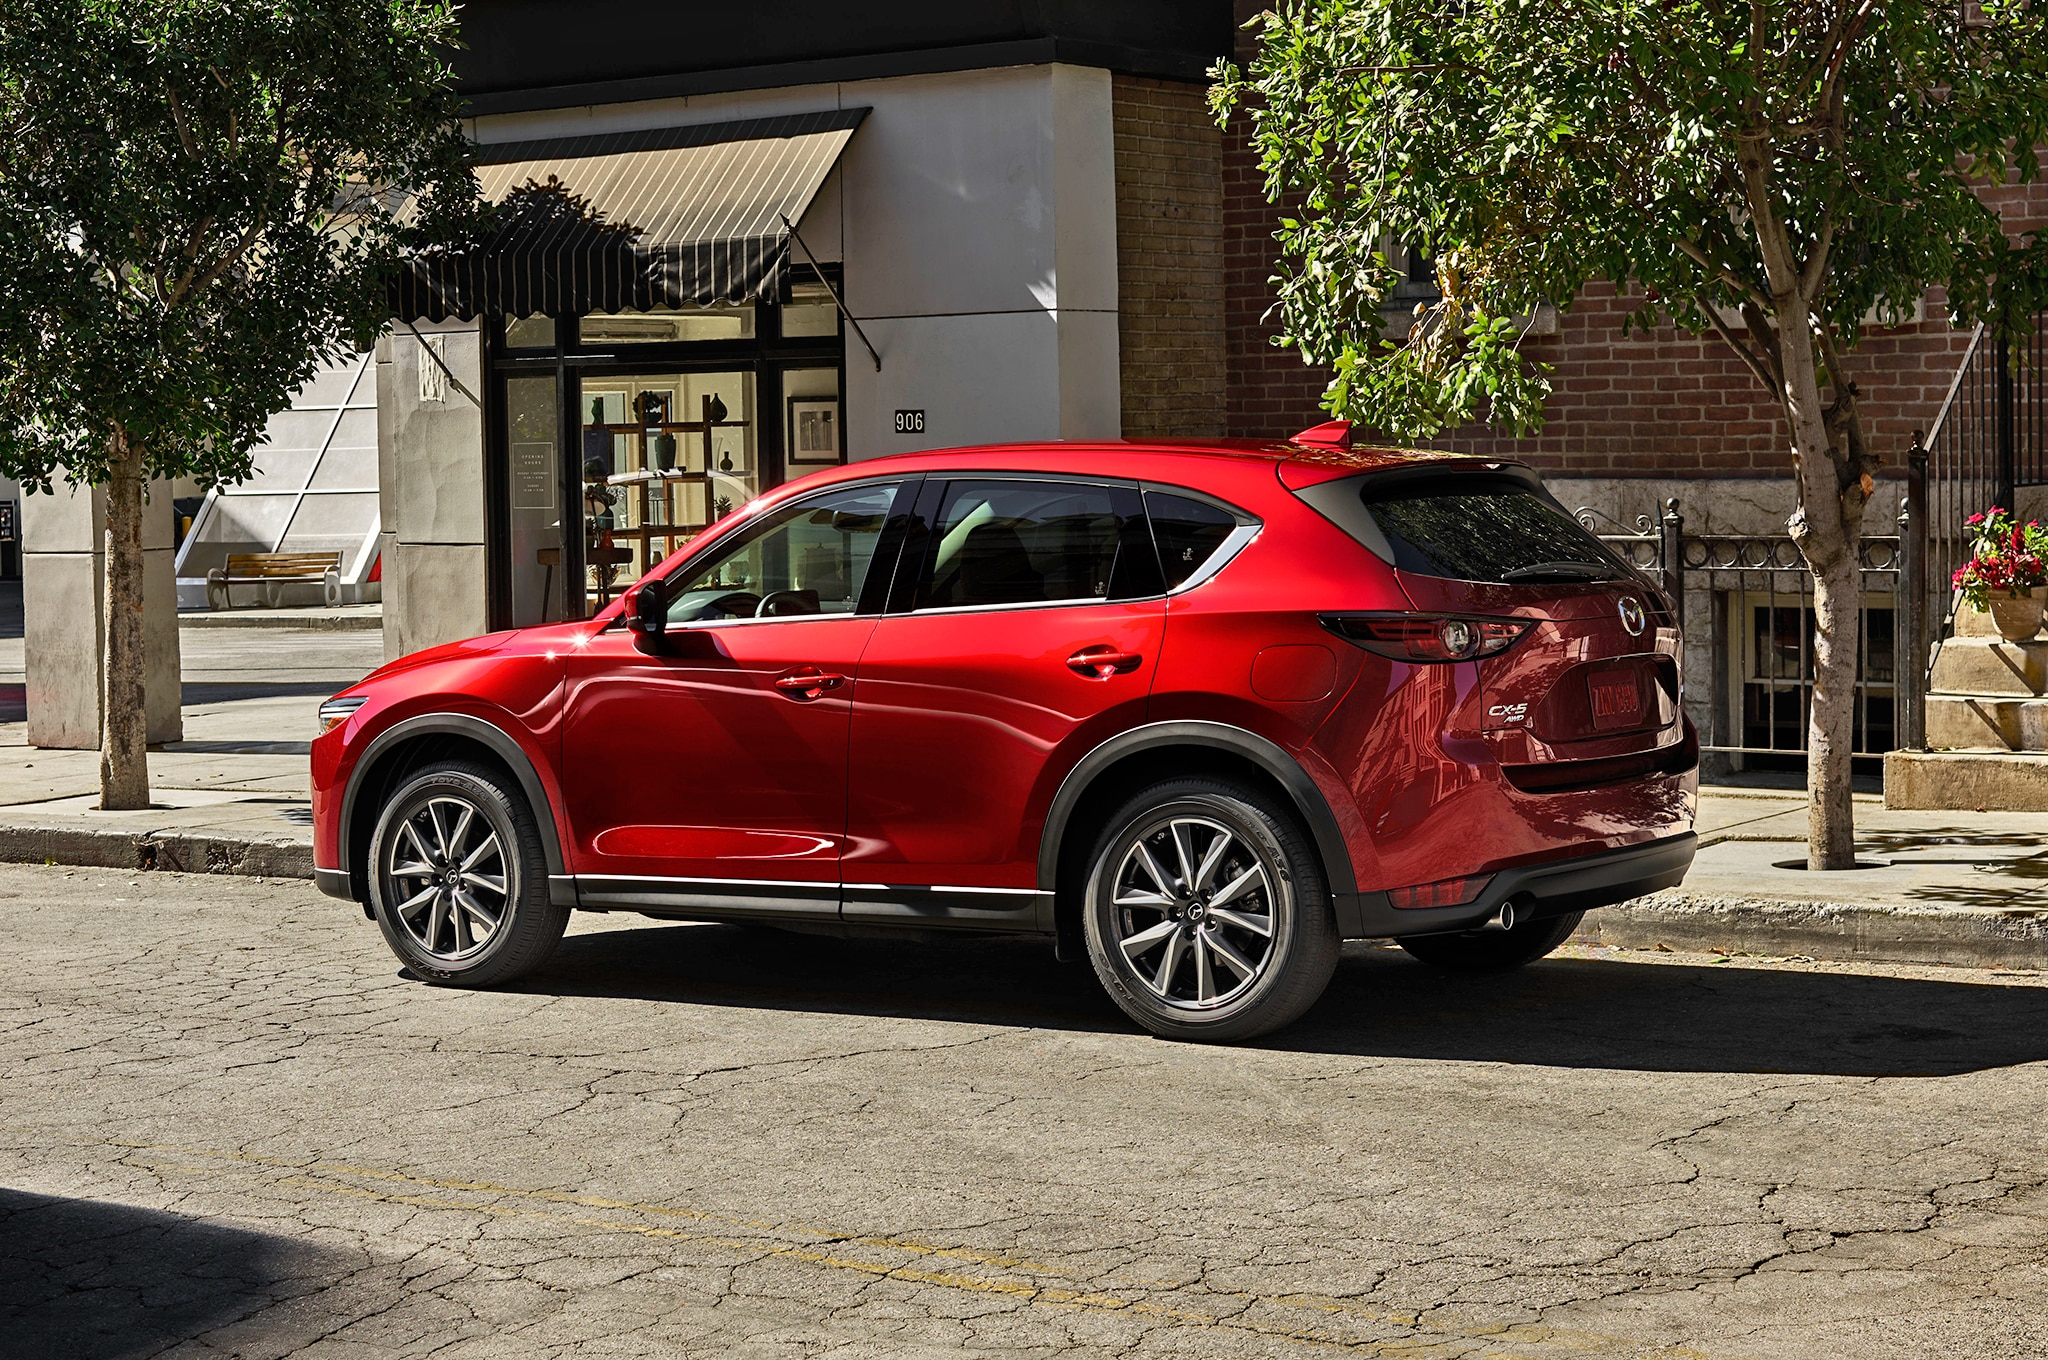 2017-Mazda-CX-5-rear-three-quarter-02-1